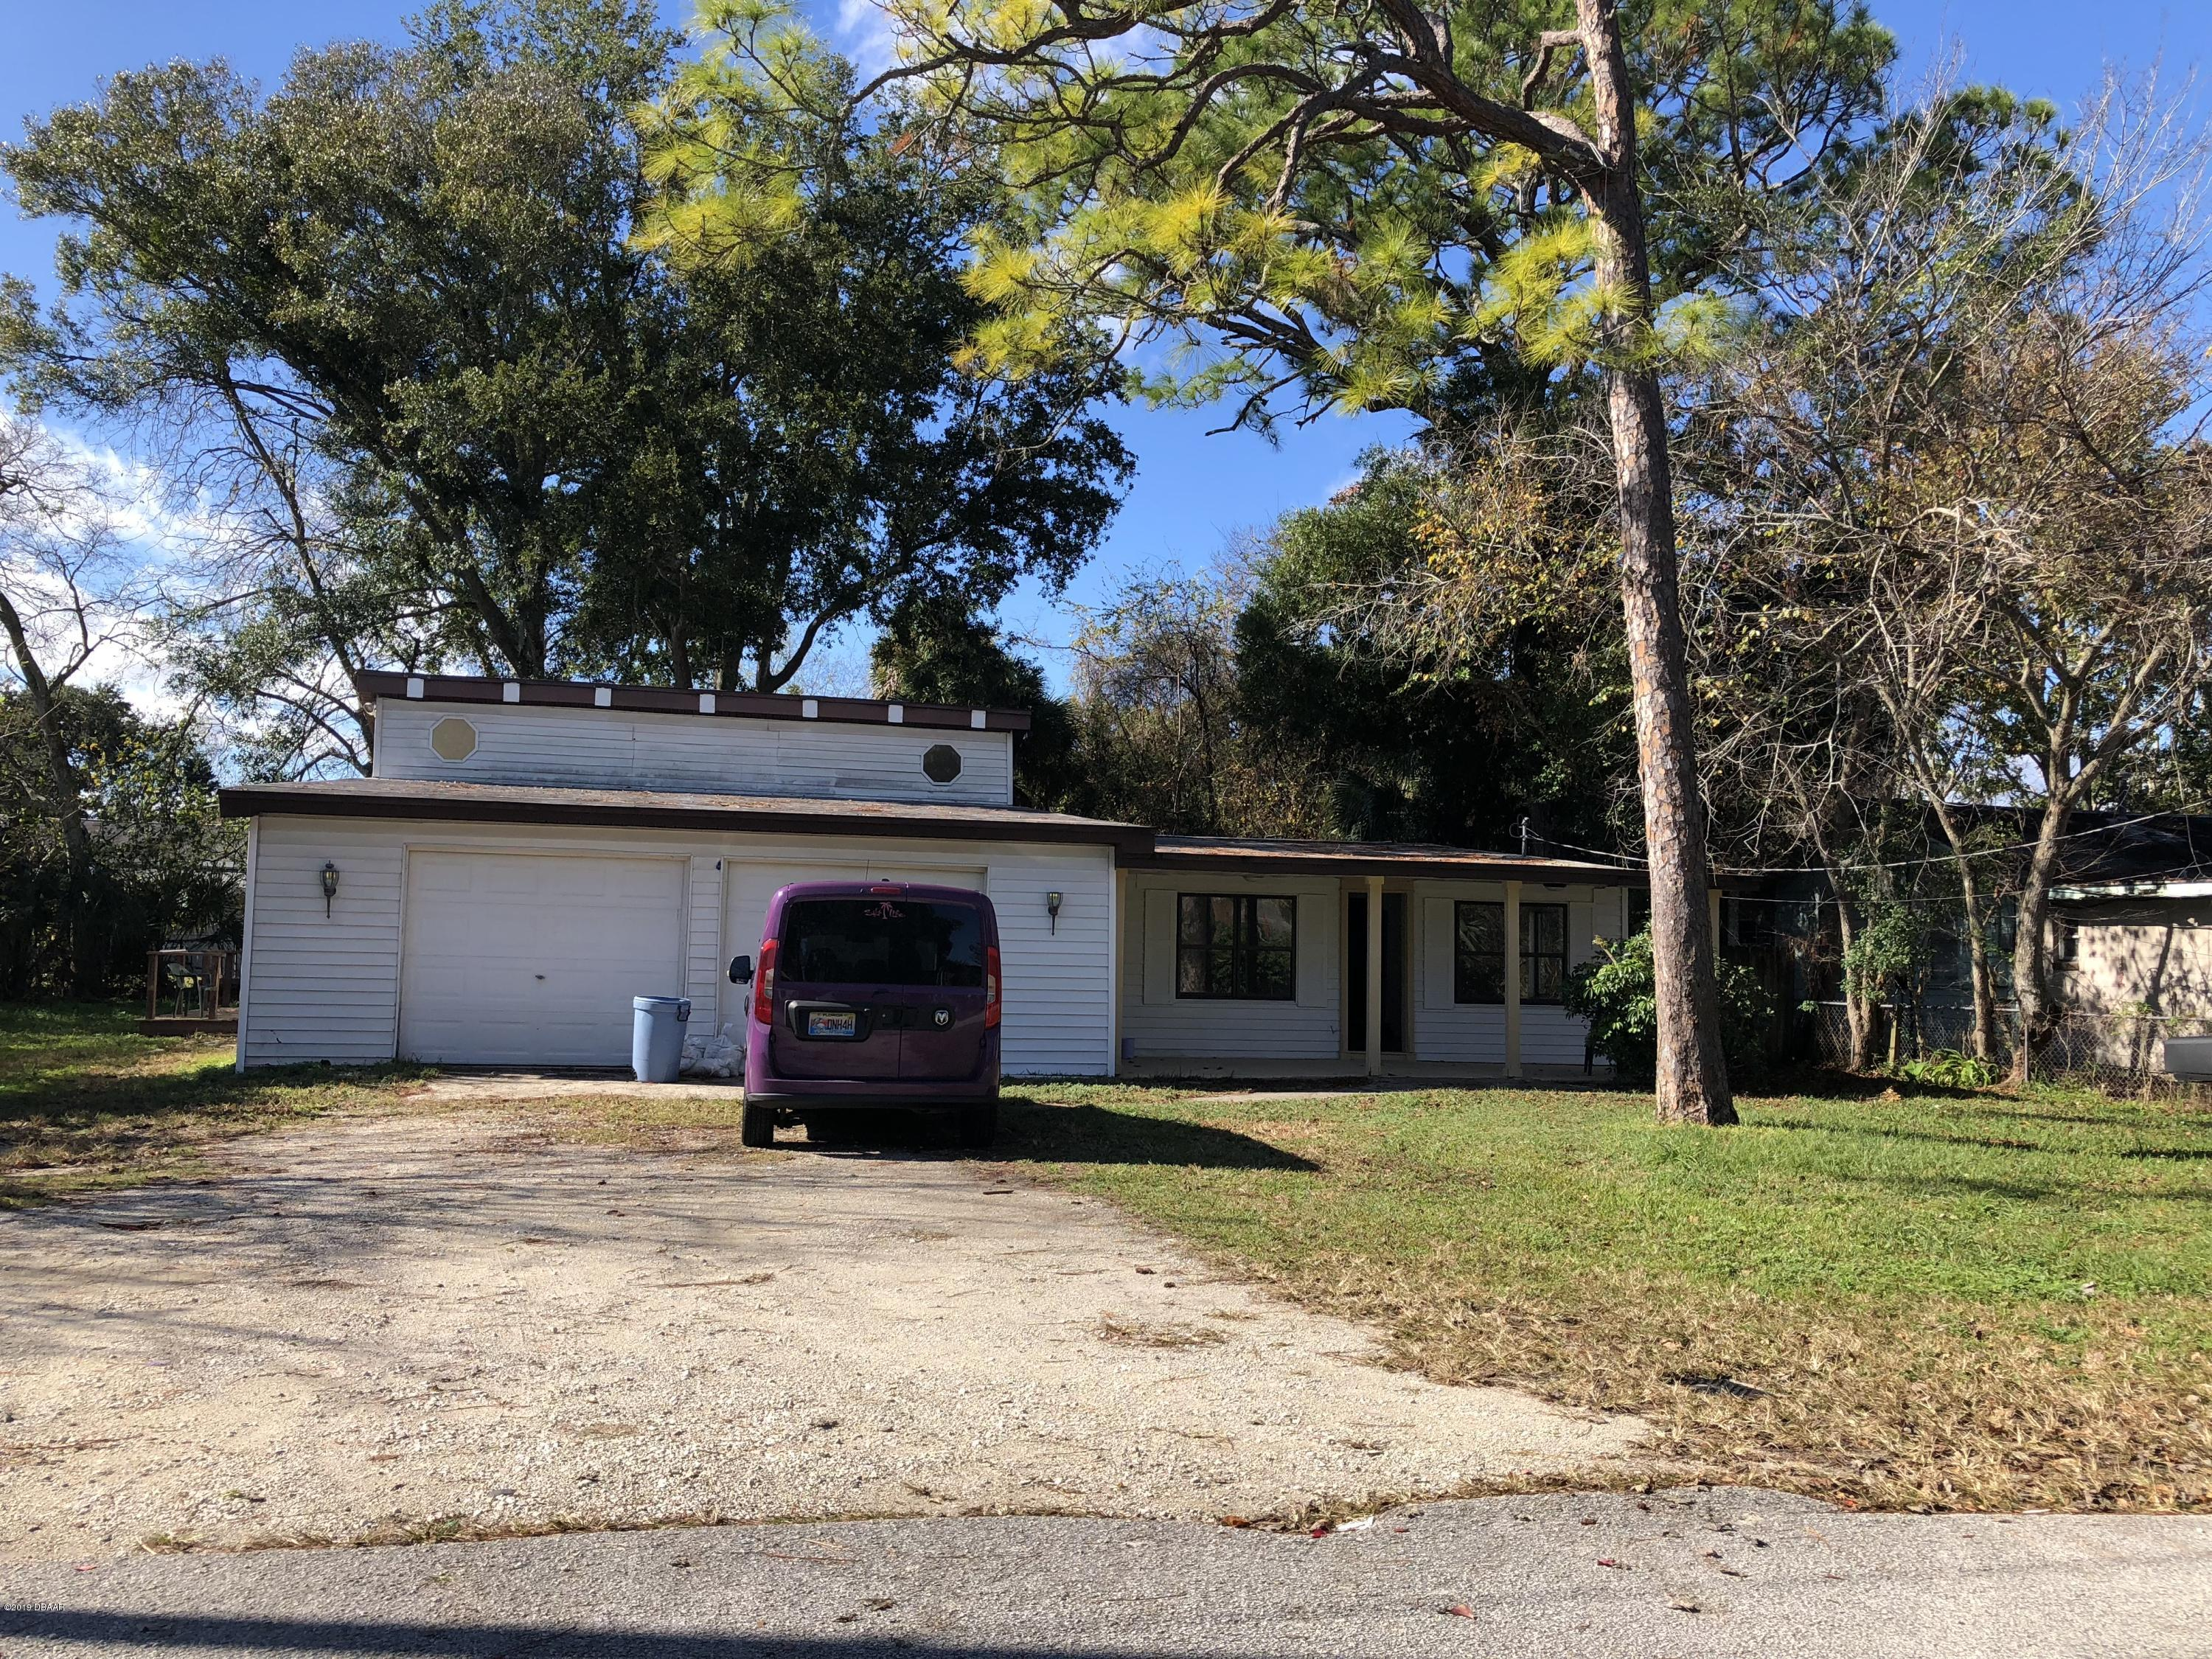 924 Oleander Holly Hill - 1